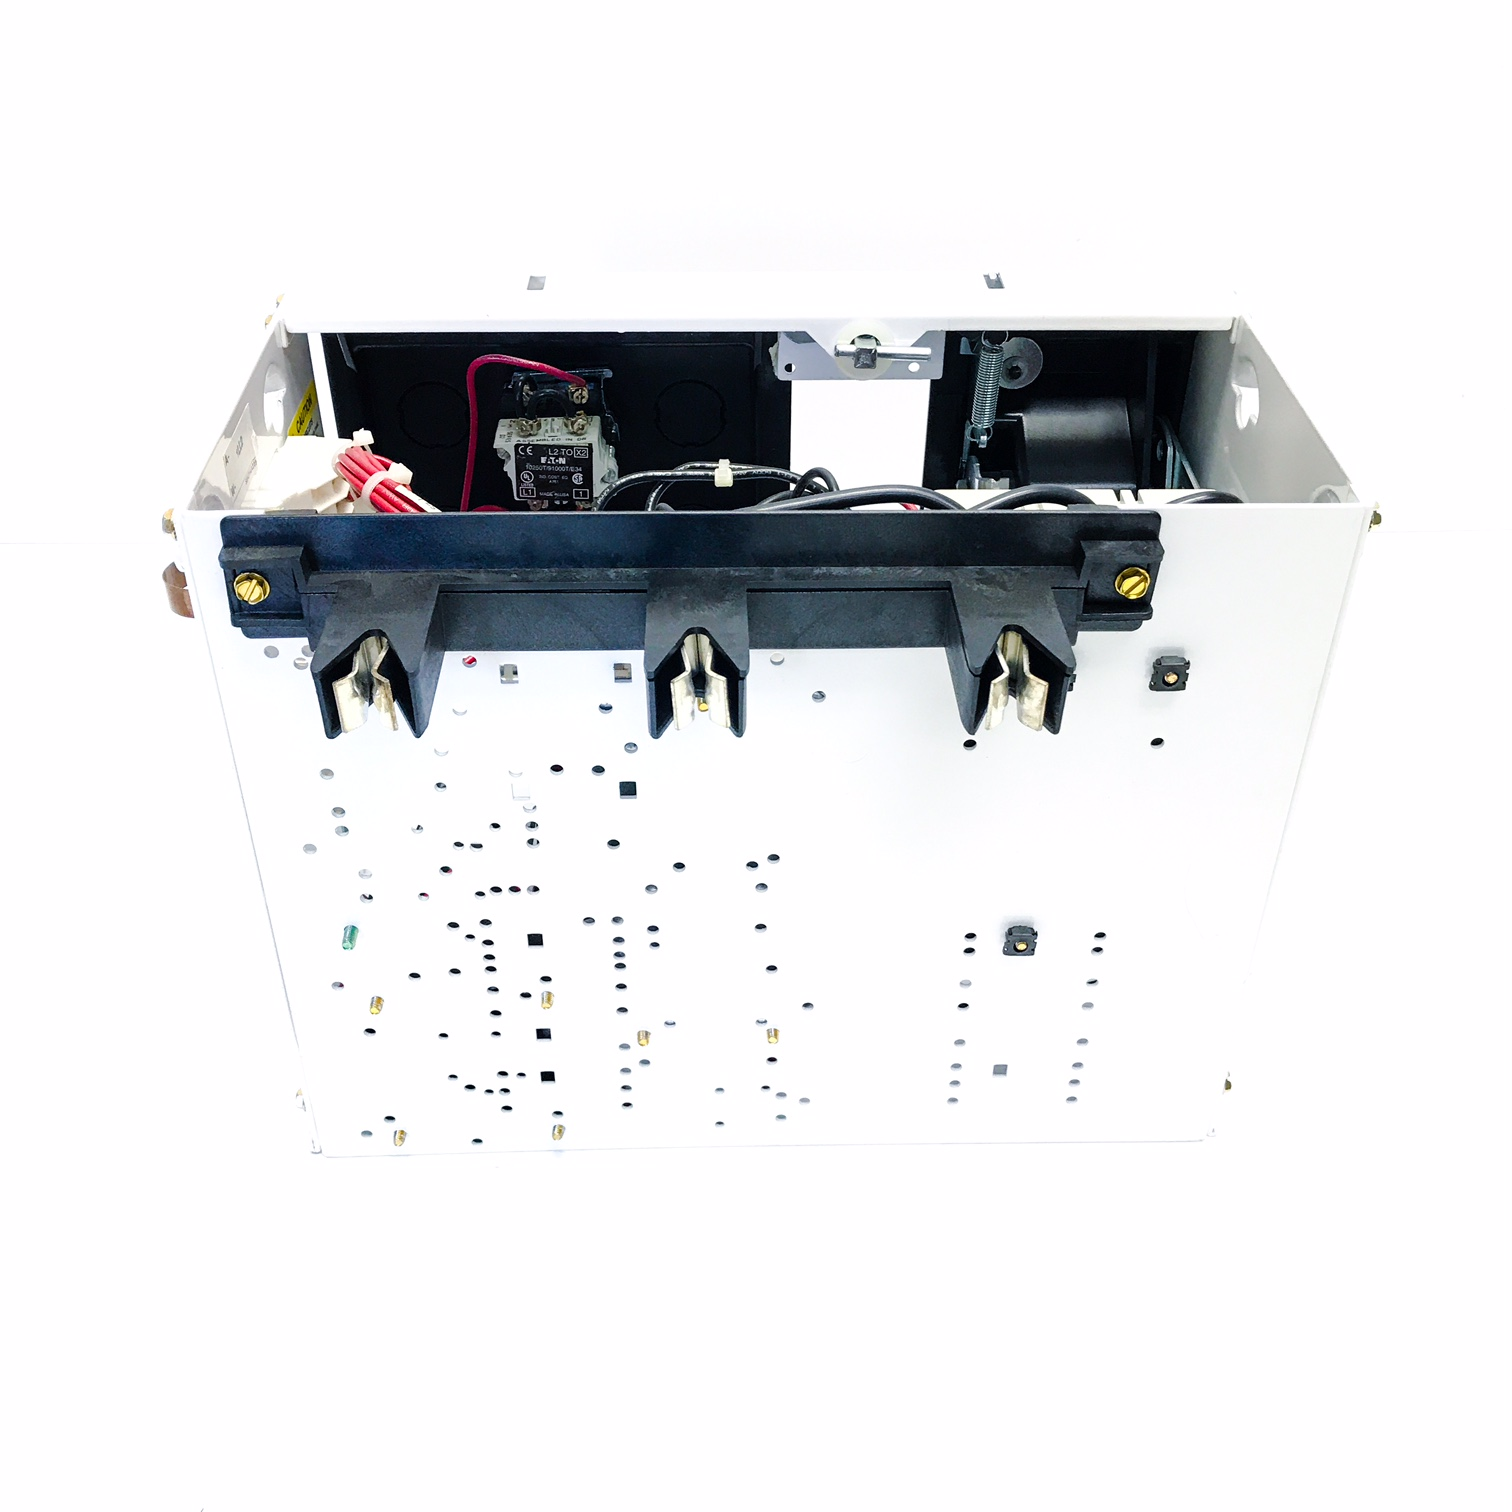 Eaton Spg0356397 2100 Series Motor Control Center